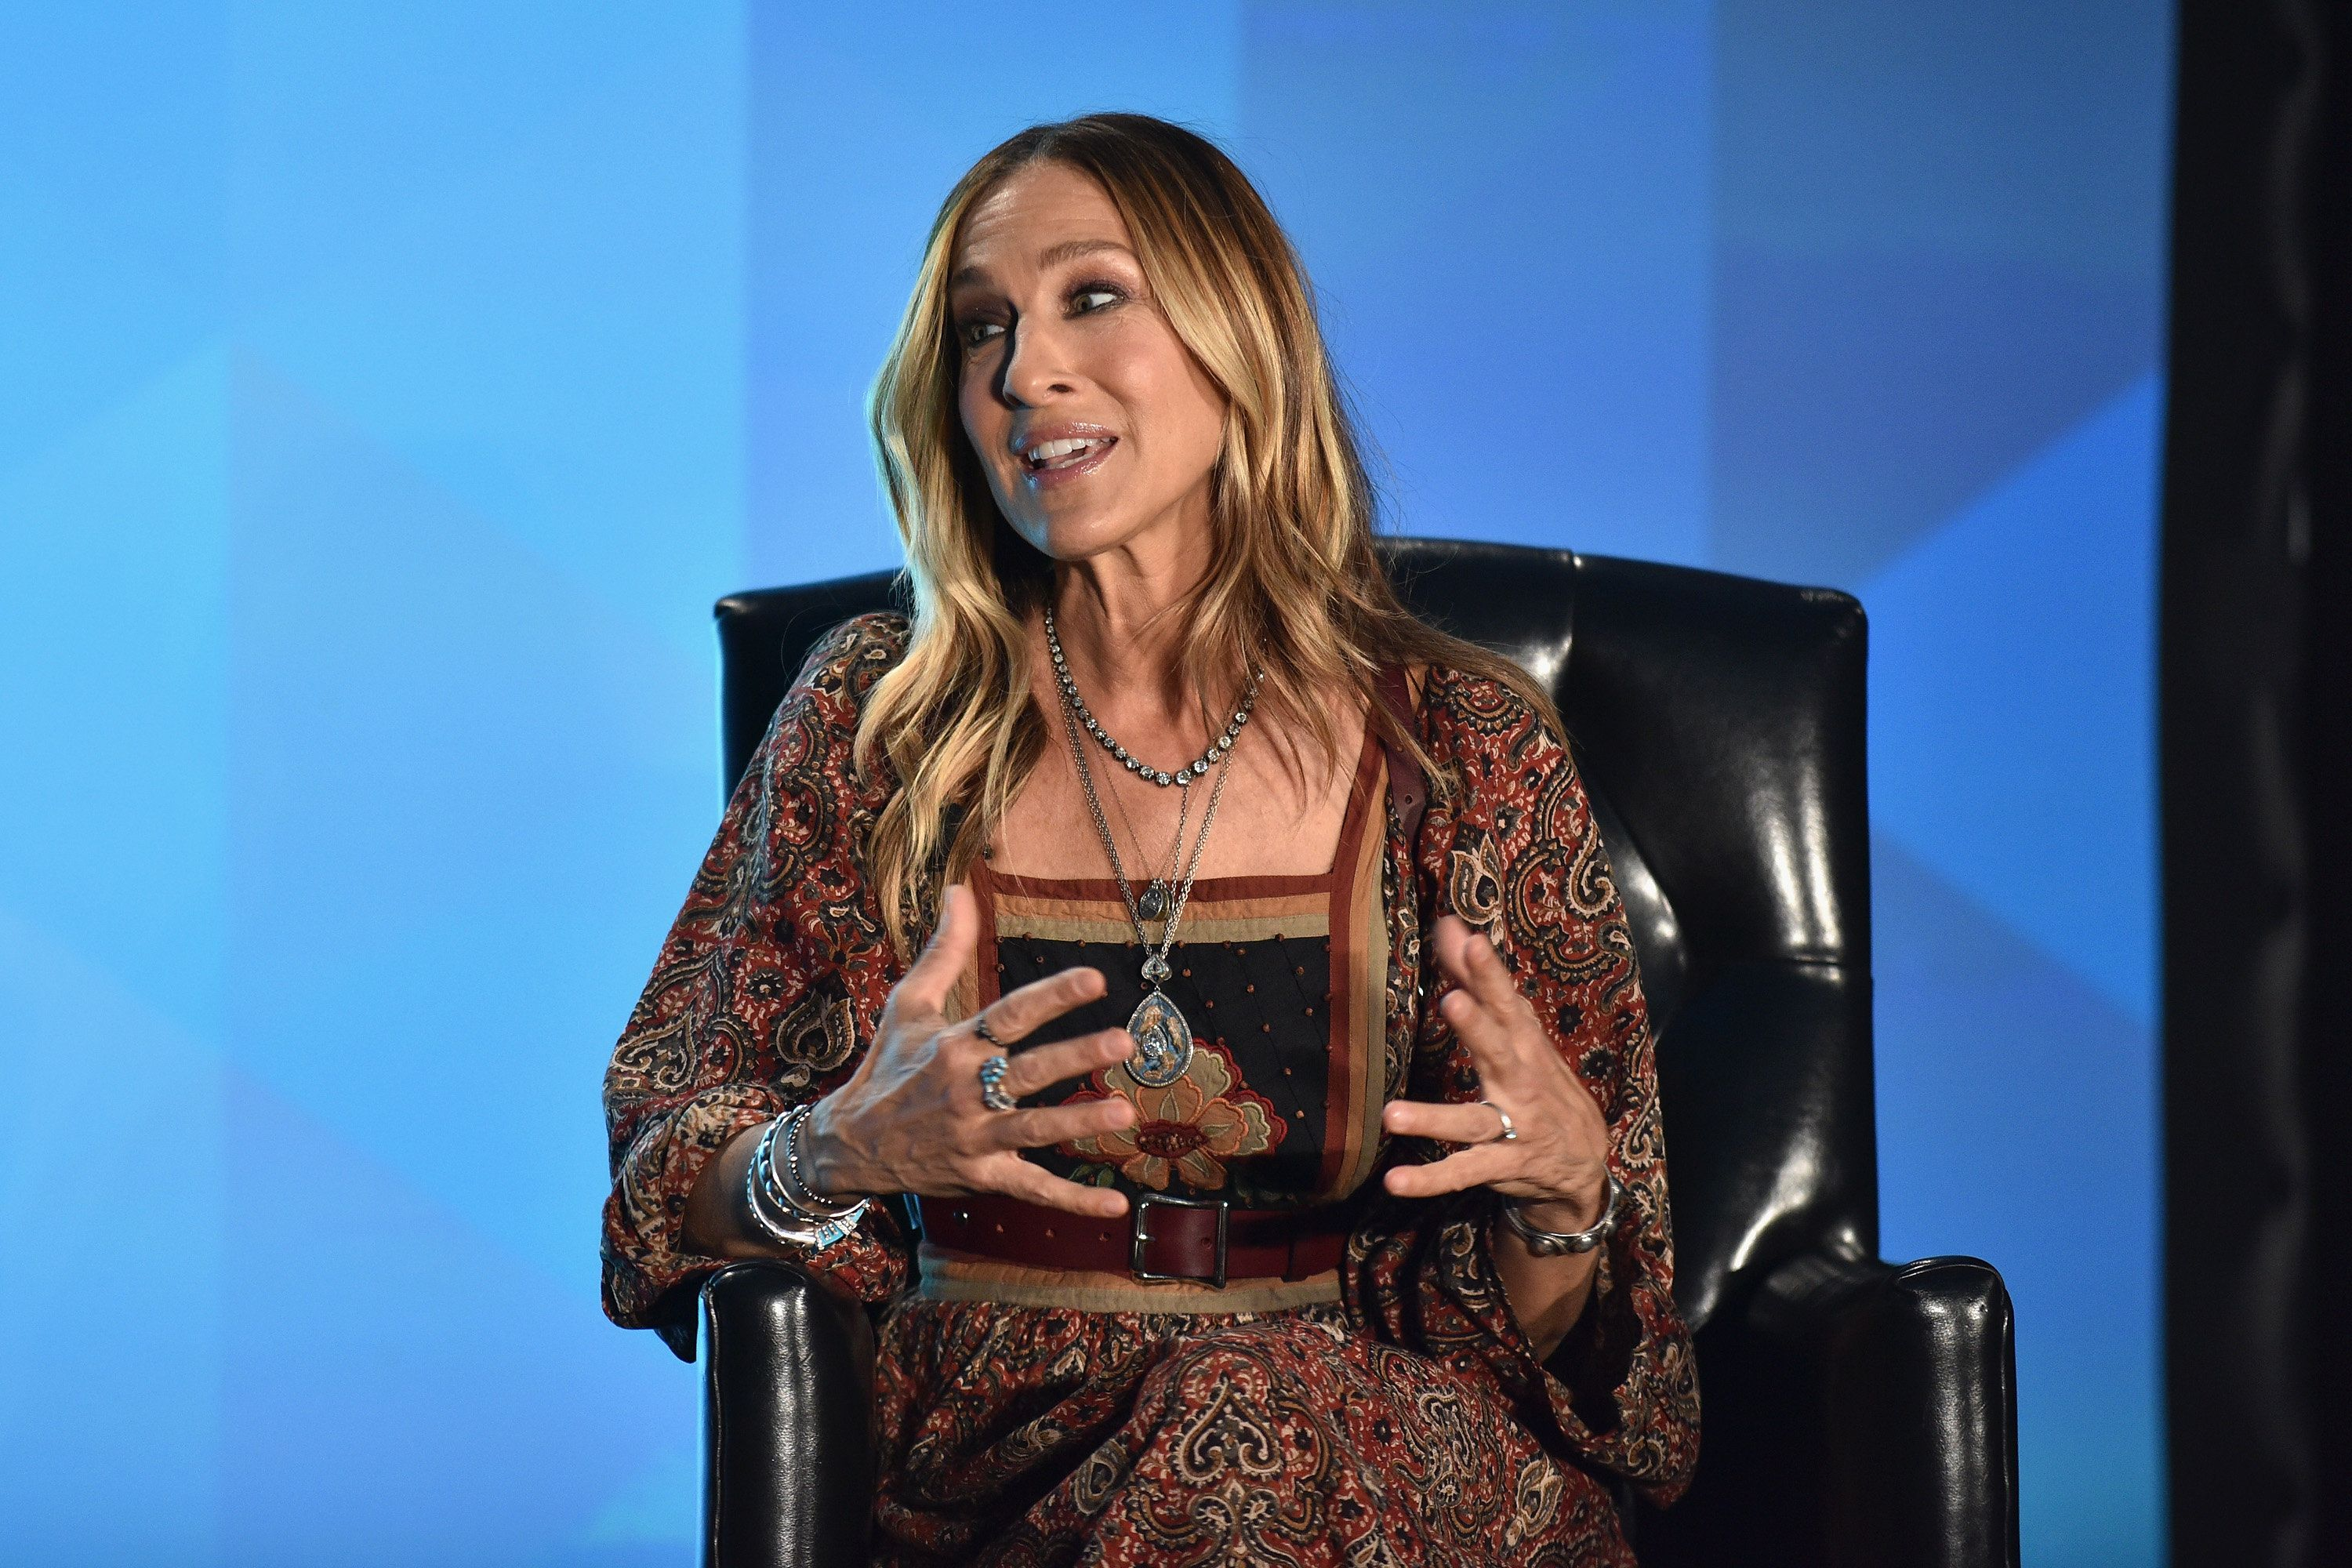 Sarah Jessica Parker Admits 'Sex And The City 2' 'Fell Short' Of Expectations As Talk Of A Third Movie